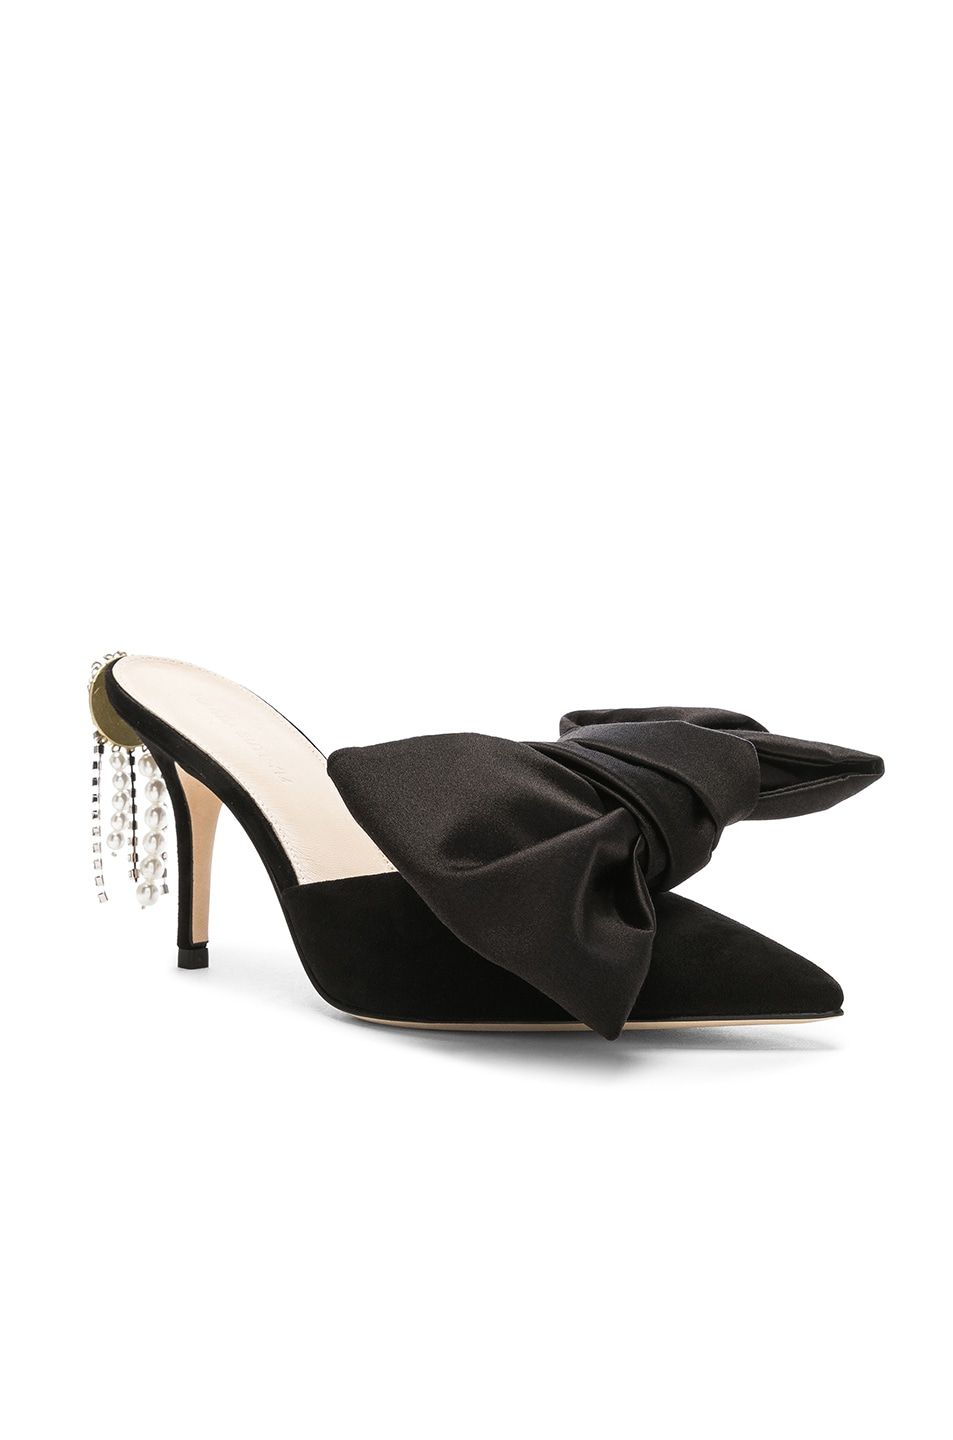 Image 2 of Magda Butrym Suede France Mules in Black